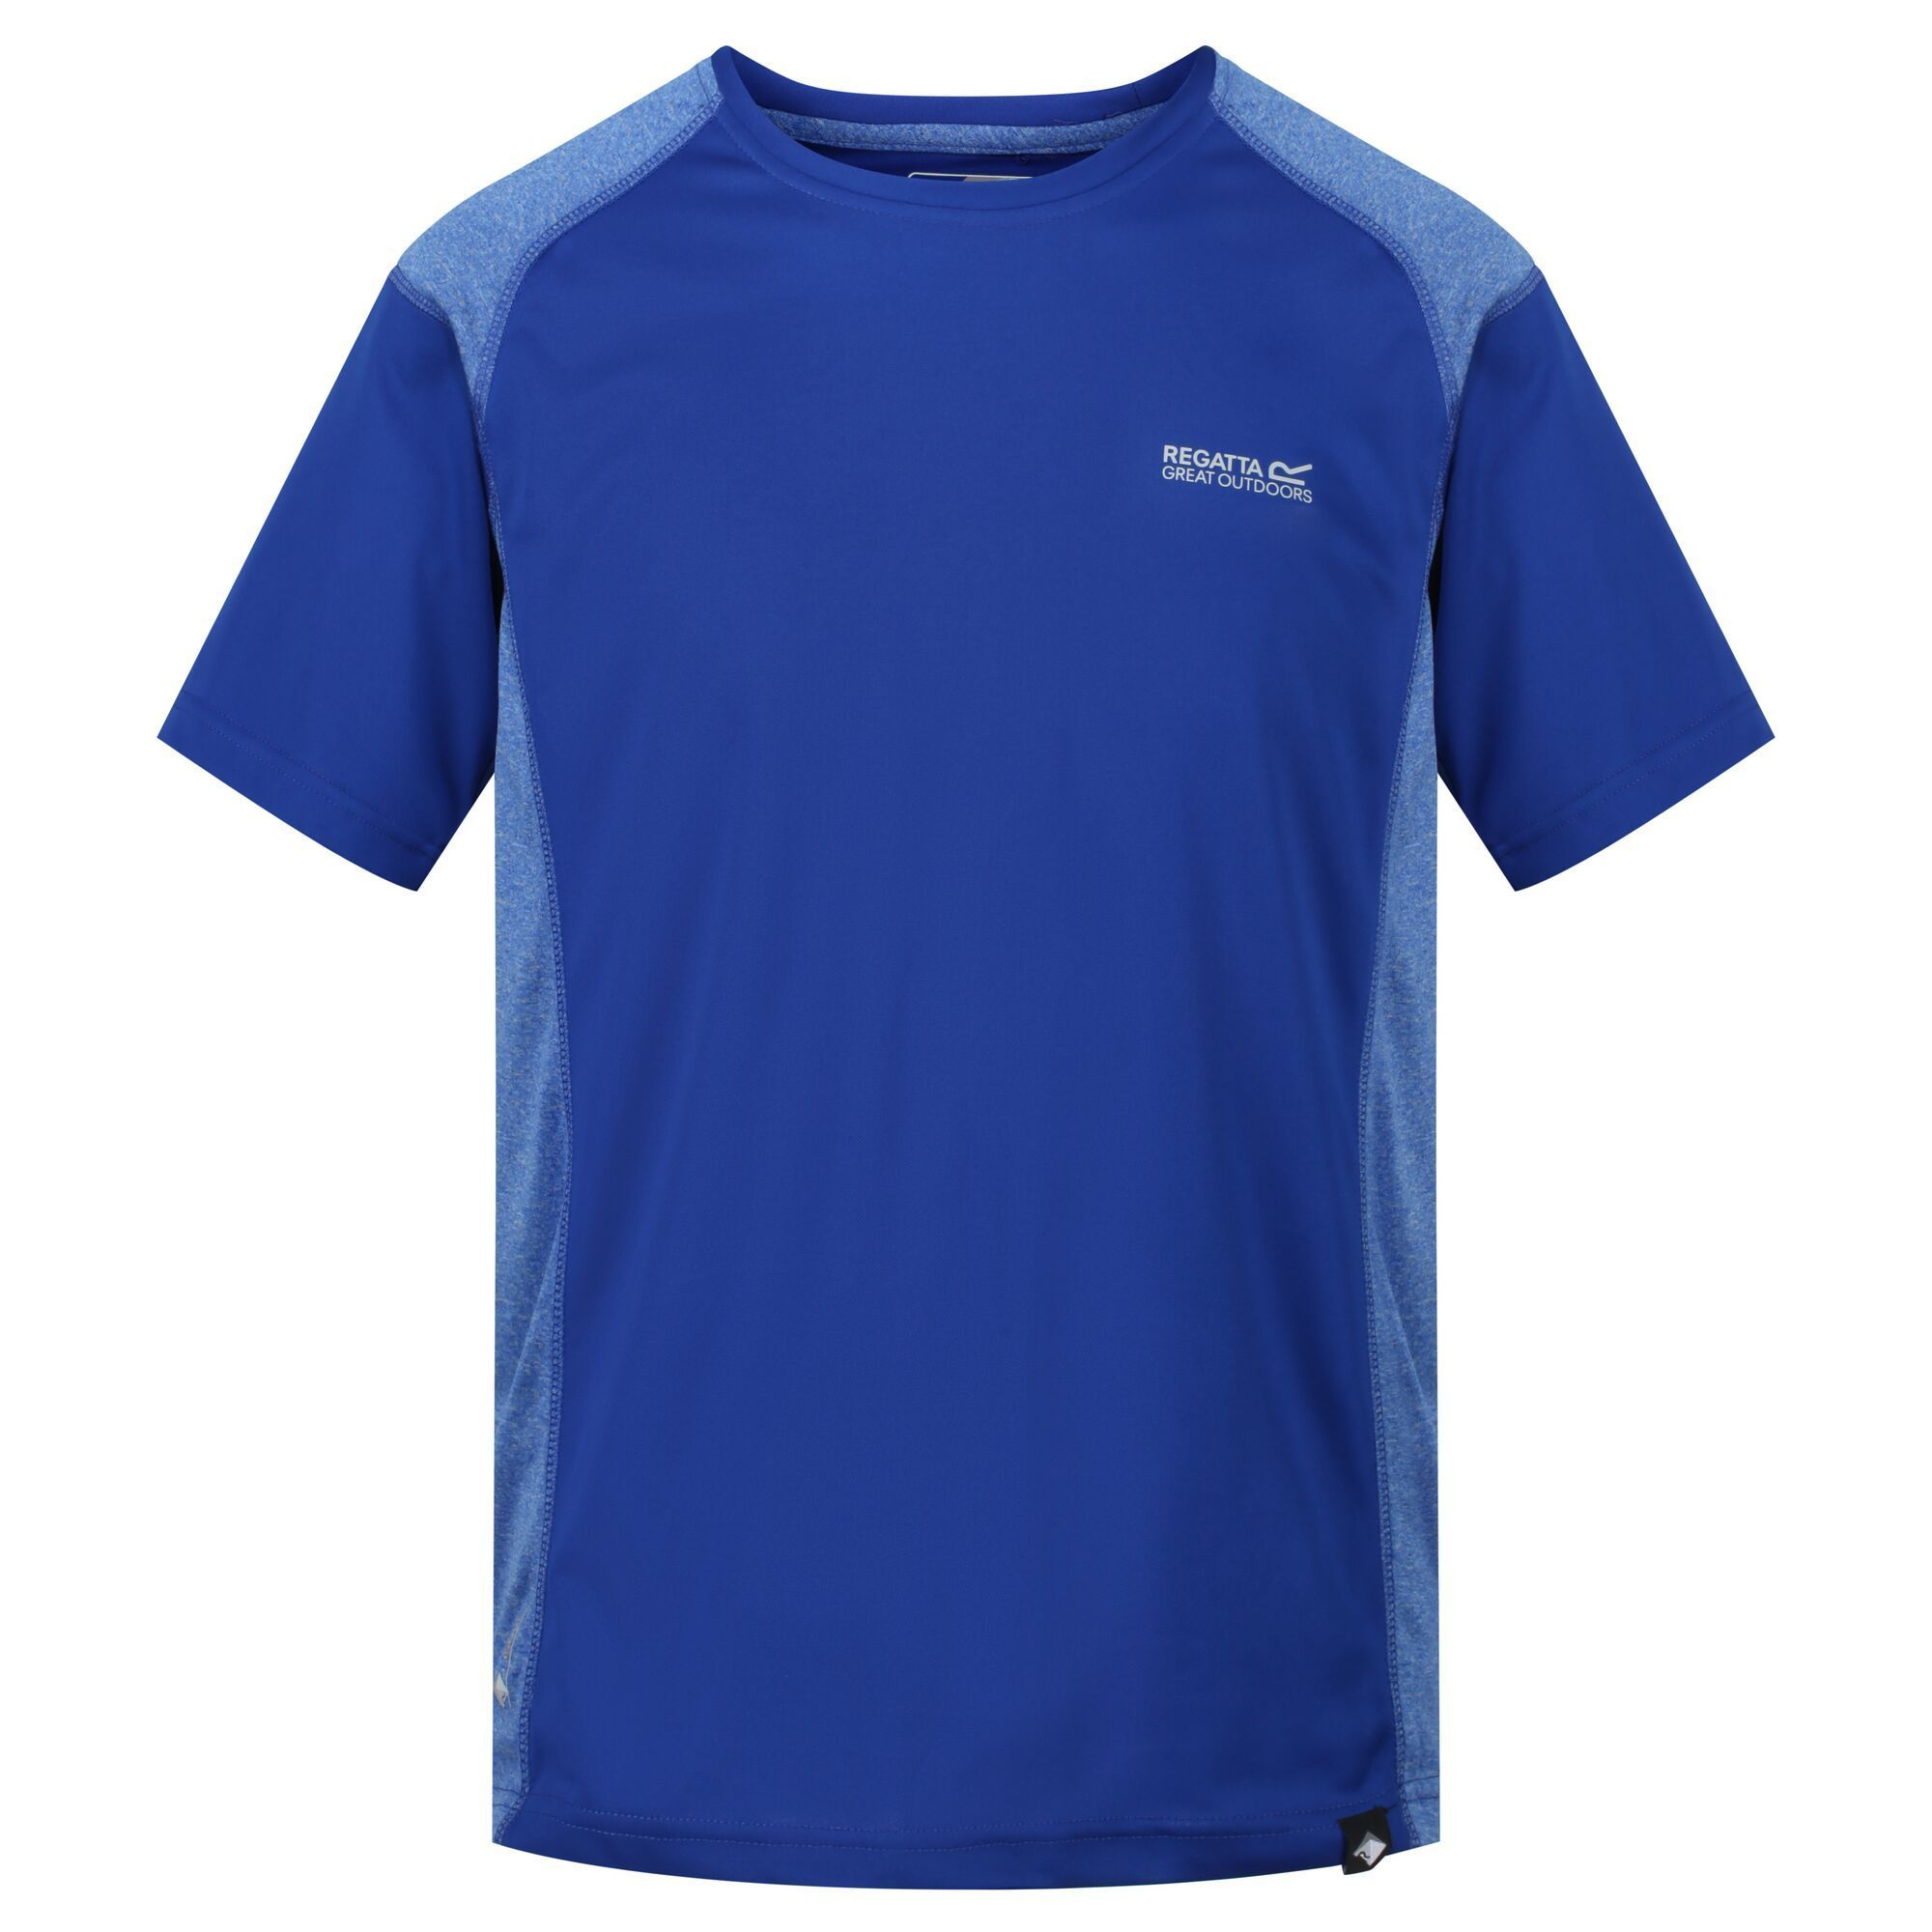 Regatta Mens Hyper-Reflective II Quick Dry T-Shirt